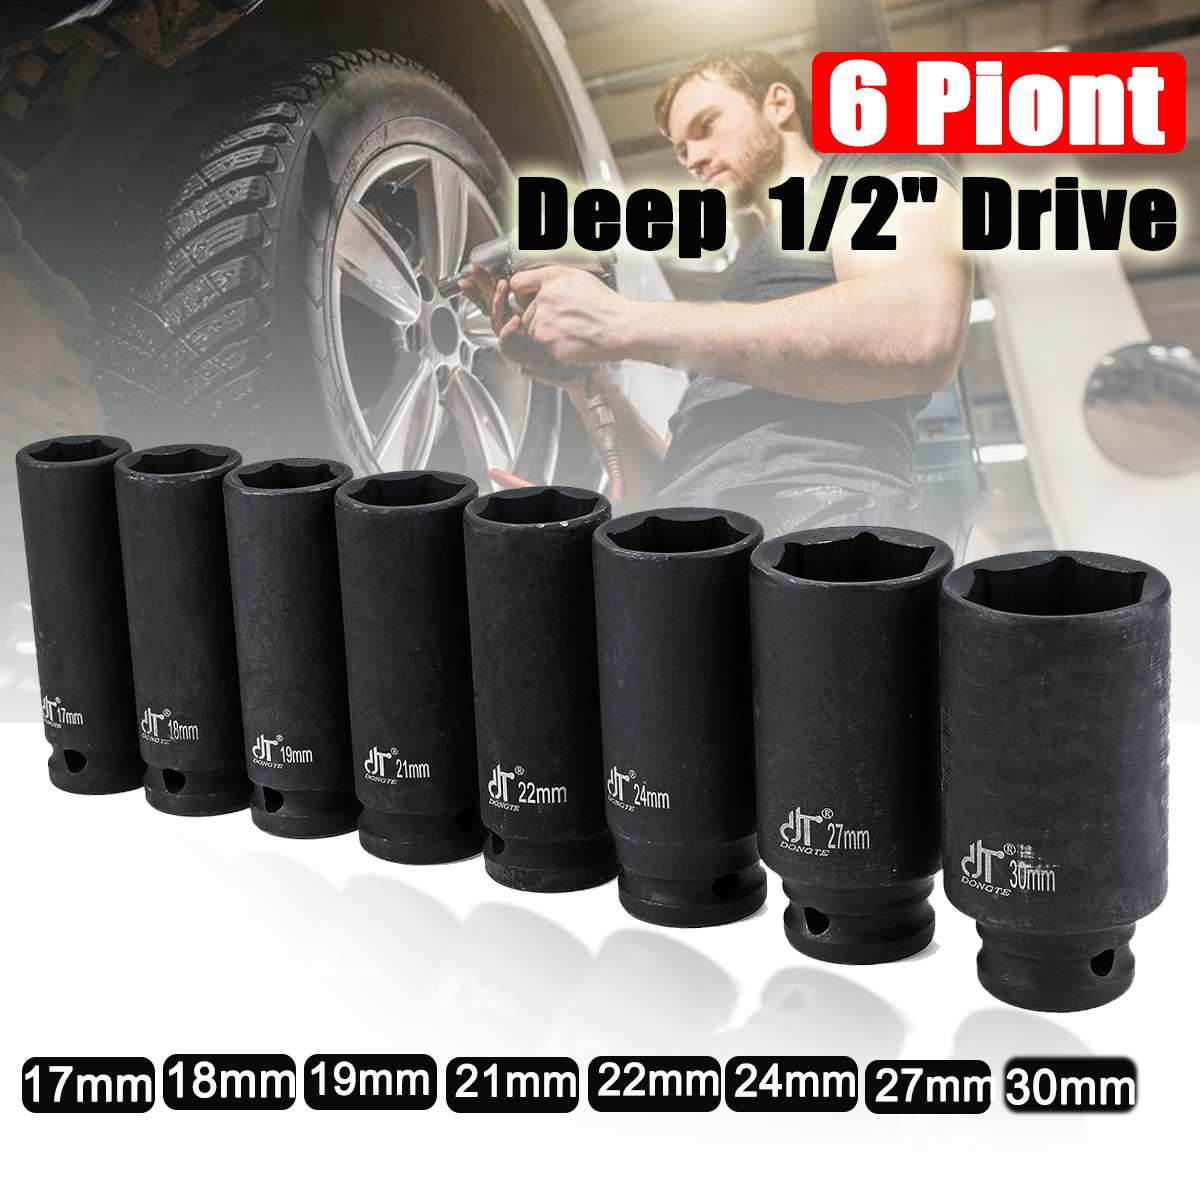 1/2 Inch Car Drive Deep Impact Sockets Metric Air Pneumatic Socket Wrench Head 17-30mm Standard Durable Auto Truck Repair Tools